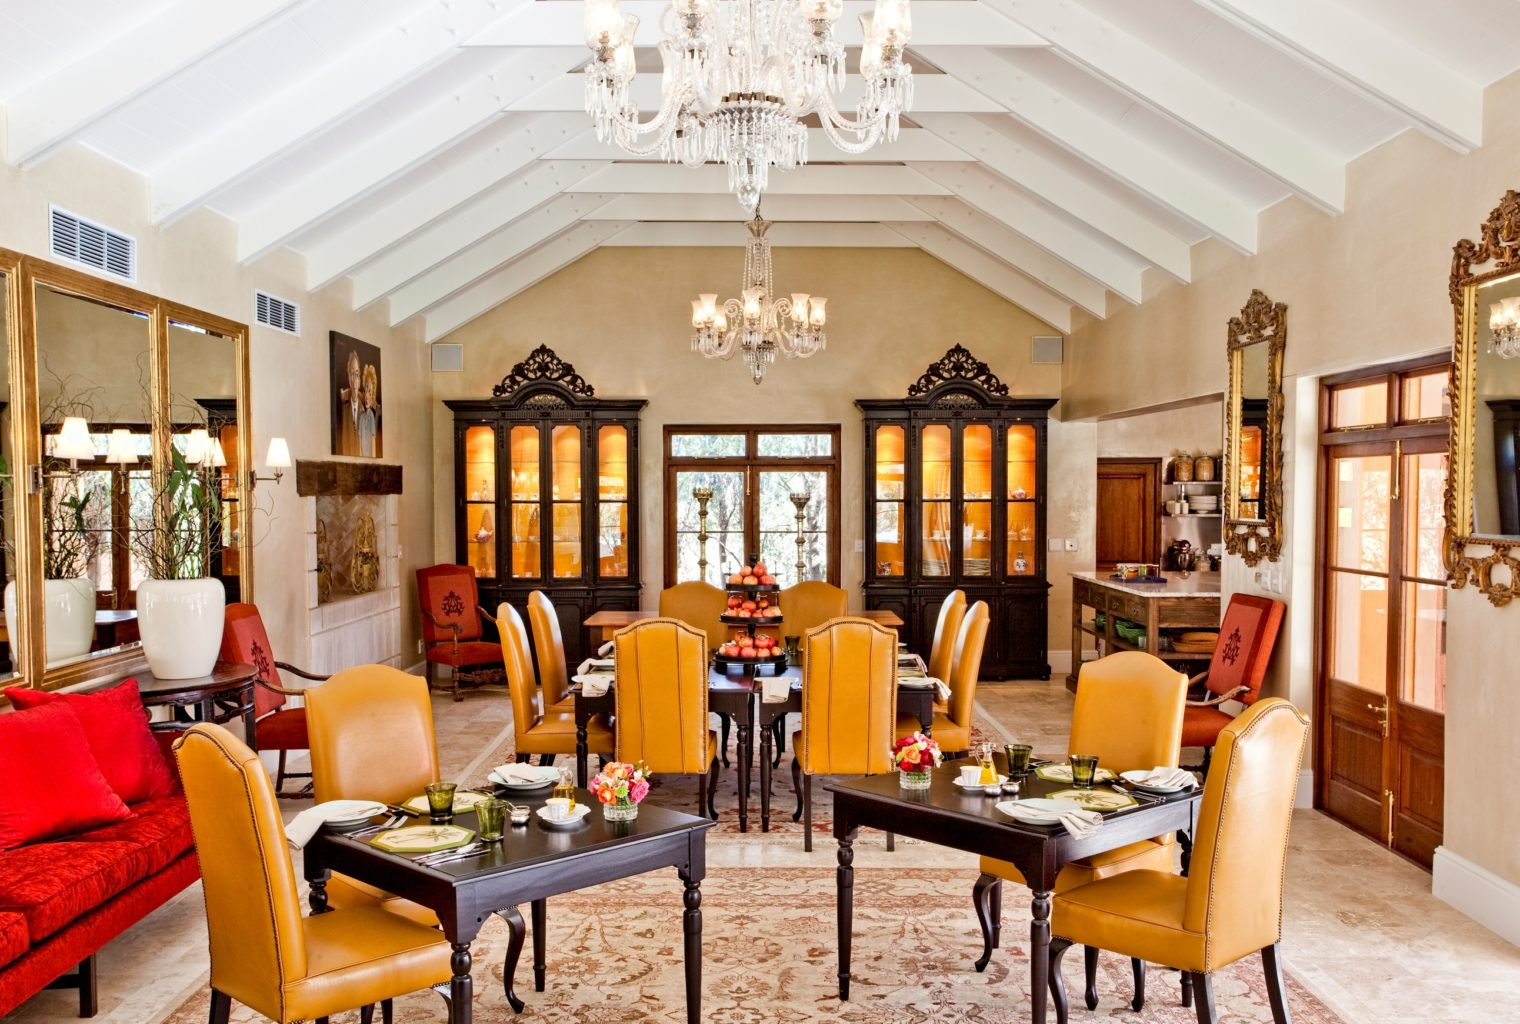 Terrace Room Interior, La Residence, South Africa